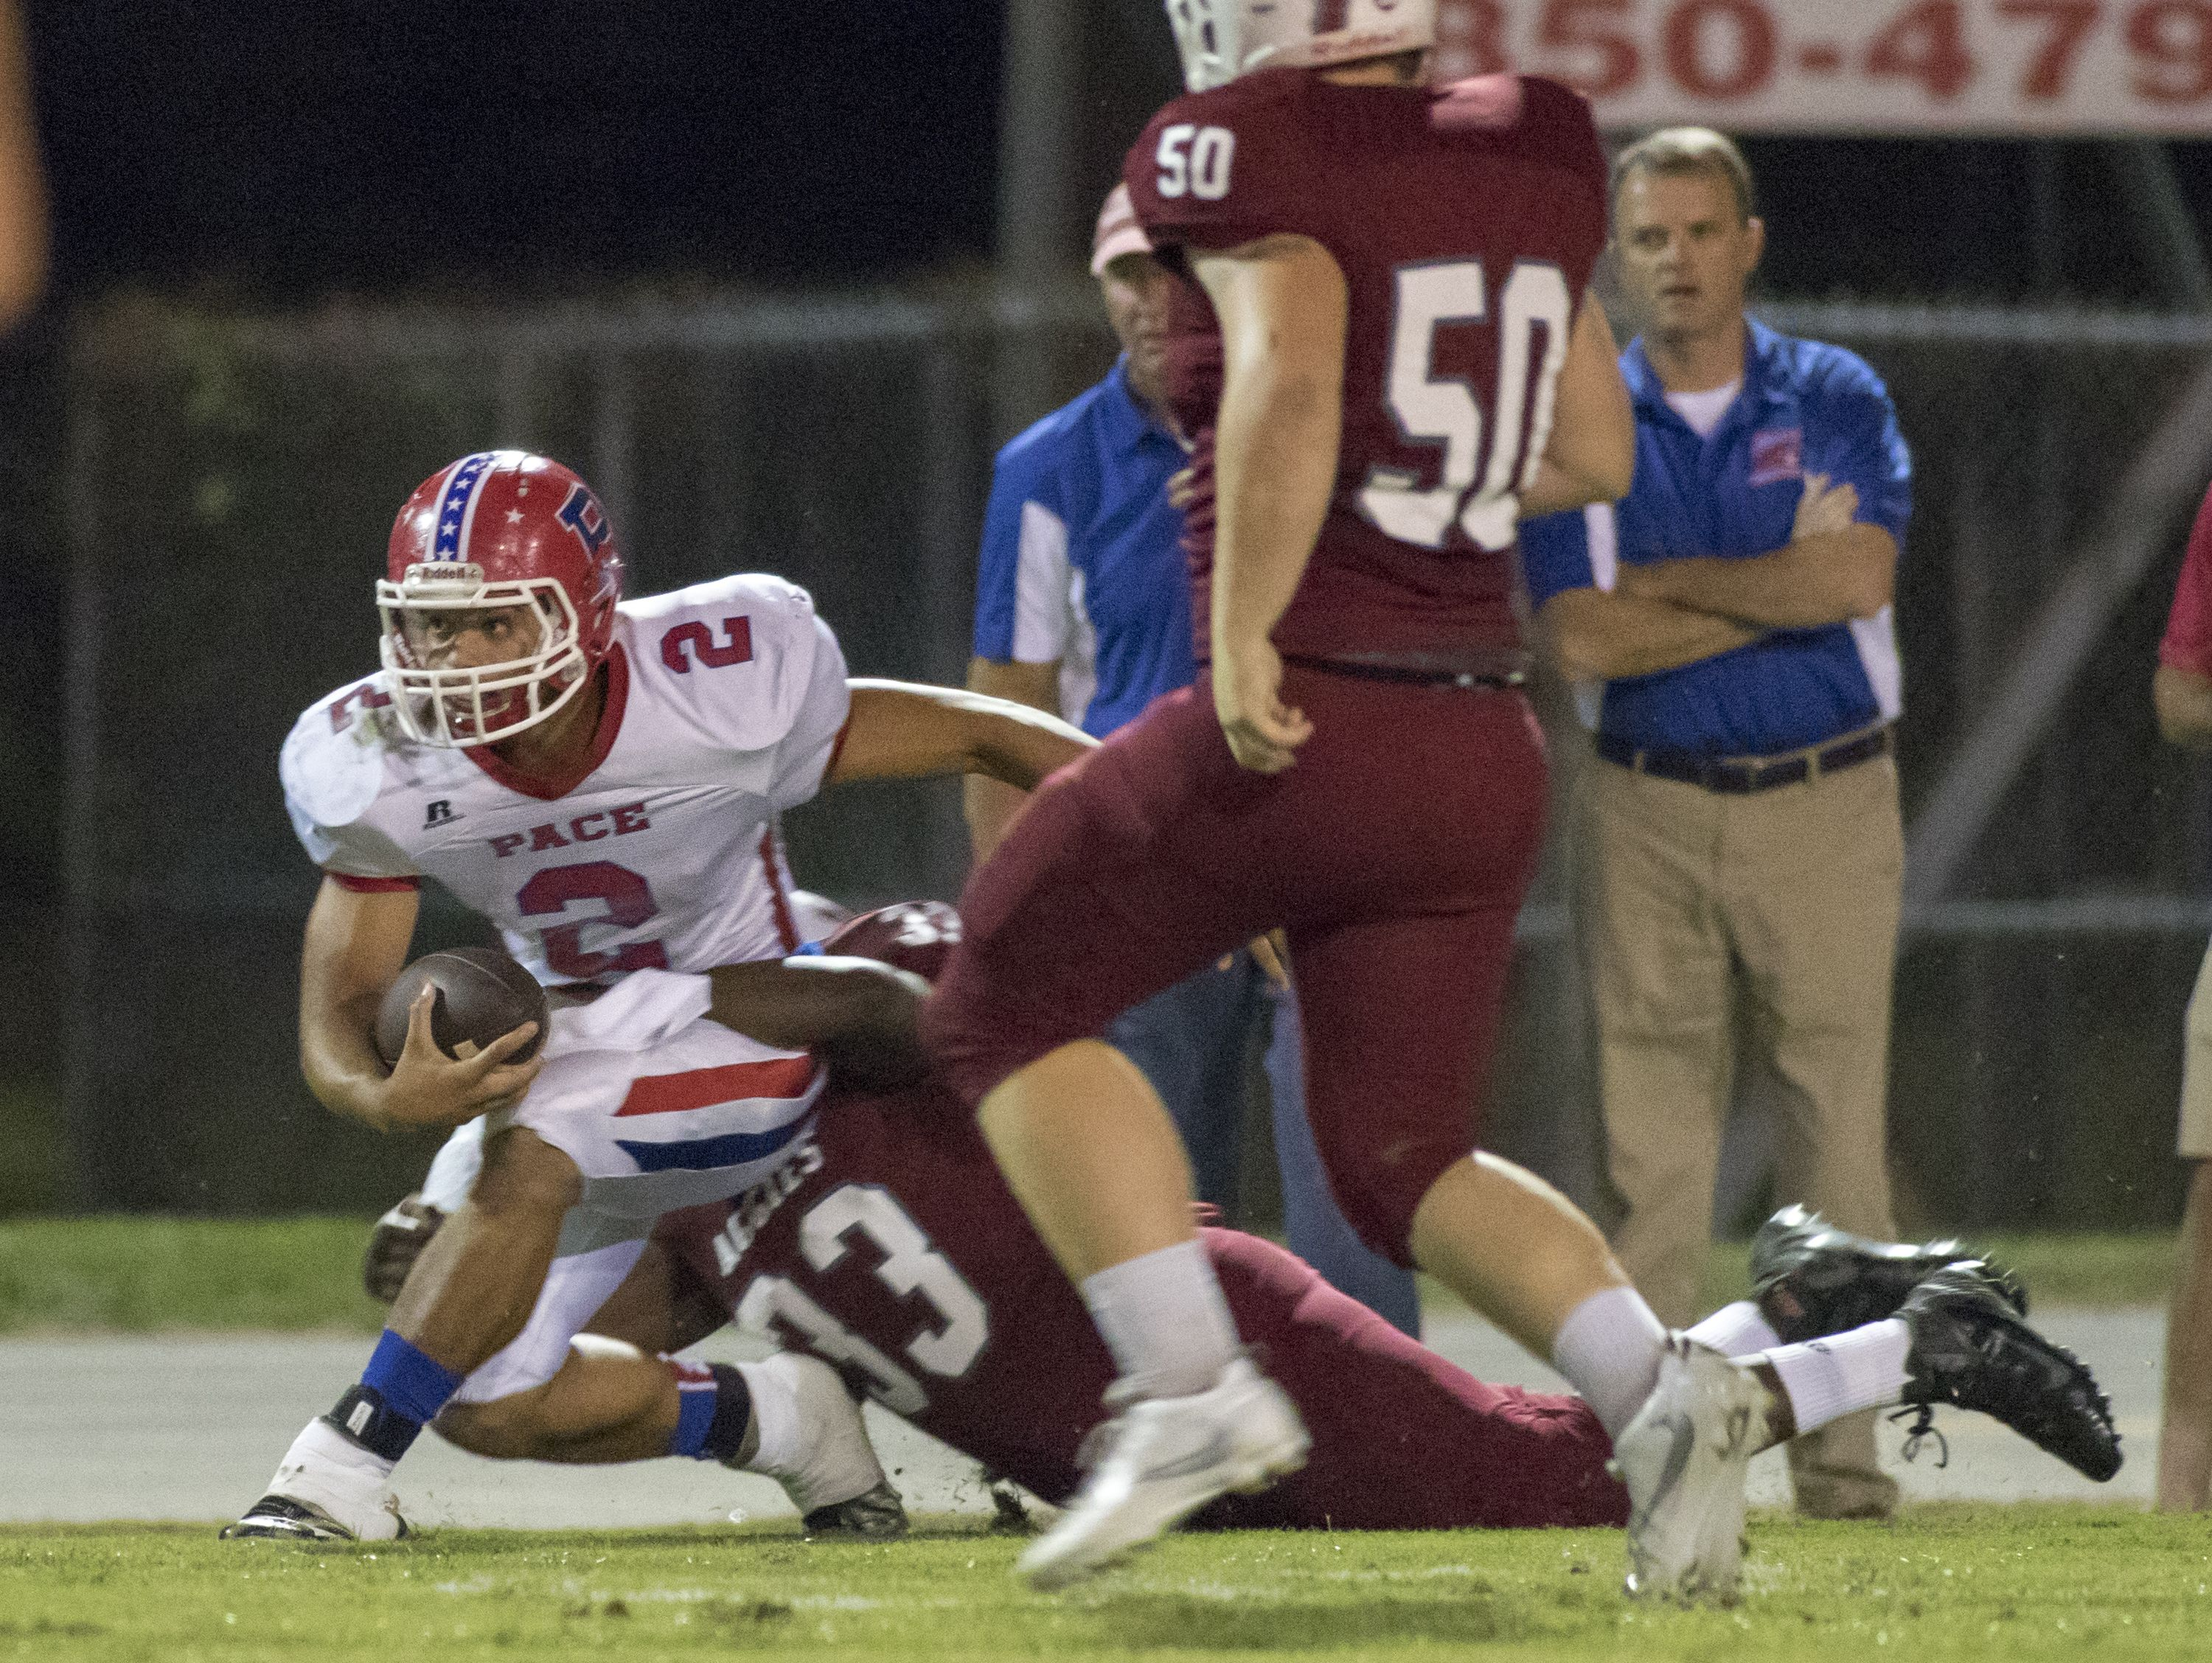 Quarterback Damean Bivins (2) is taken down by Caleb Campell (33) during the Pace vs Tate football game at Tate High School on Friday, October 7, 2016.